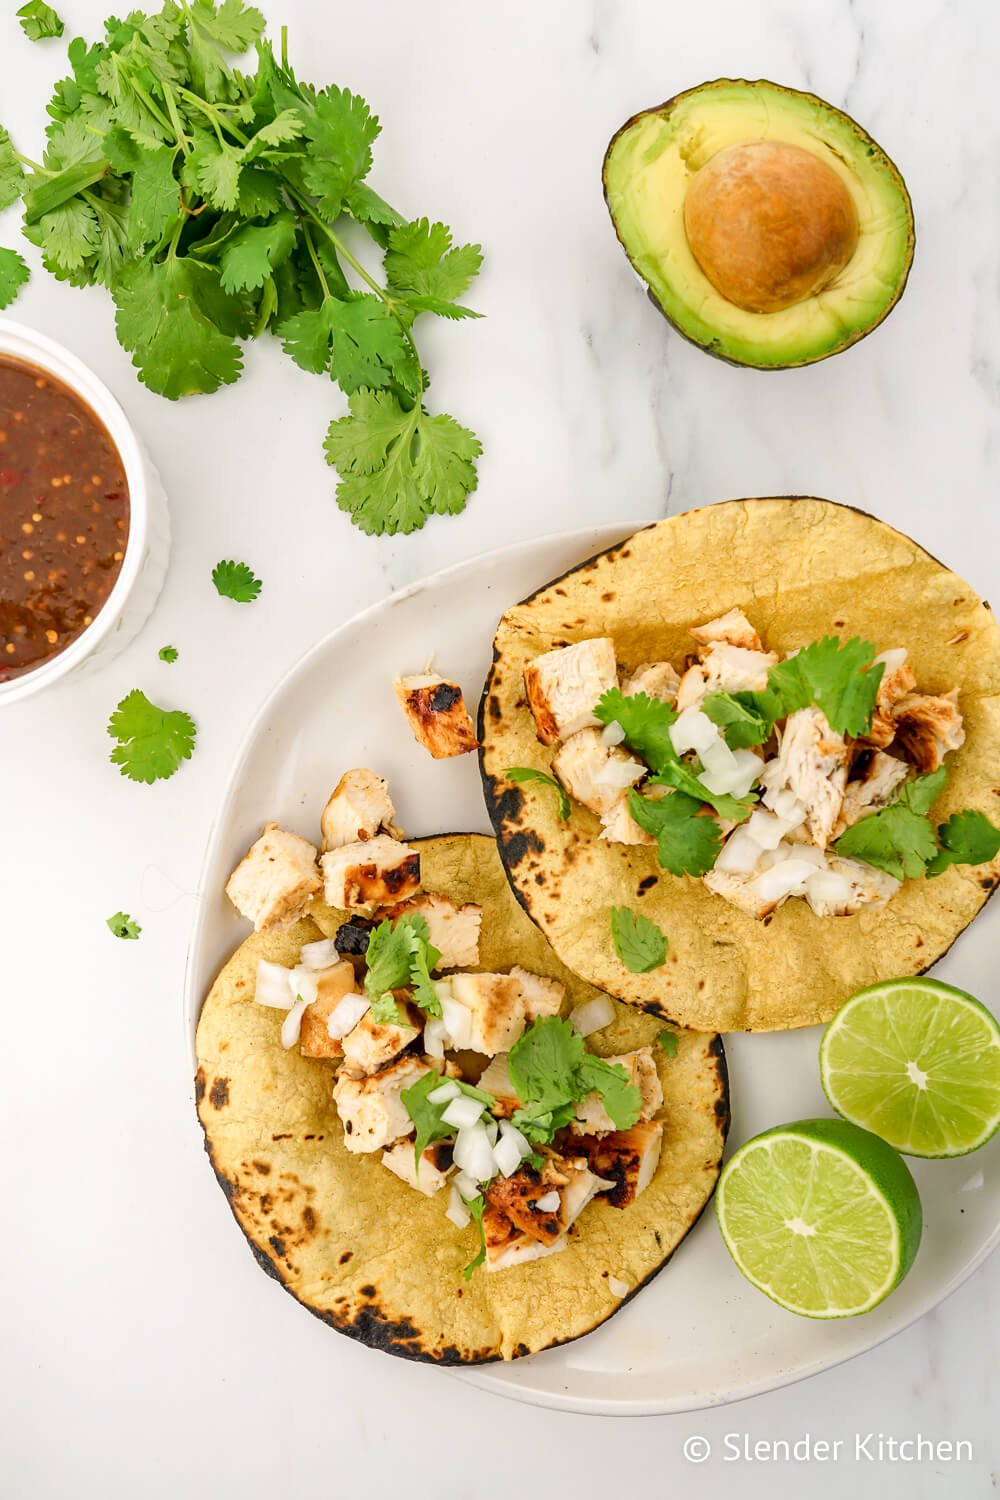 Chicken tacos with cilantro and avocado on a marble background.